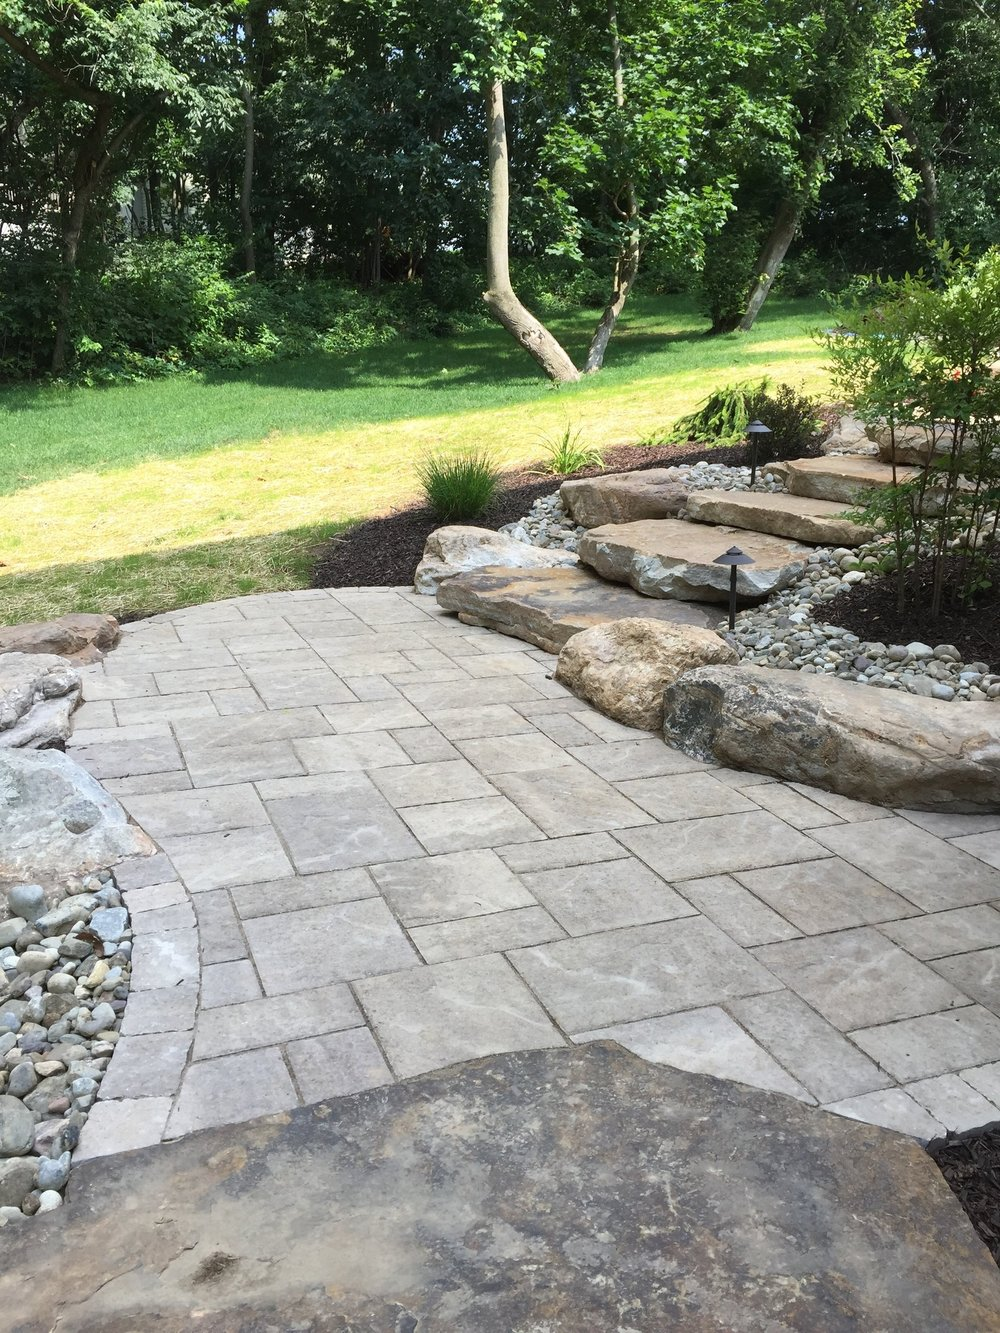 Top backyard landscape design with an outdoor kitchen by landscape contractor in Reading, Pennsylvania